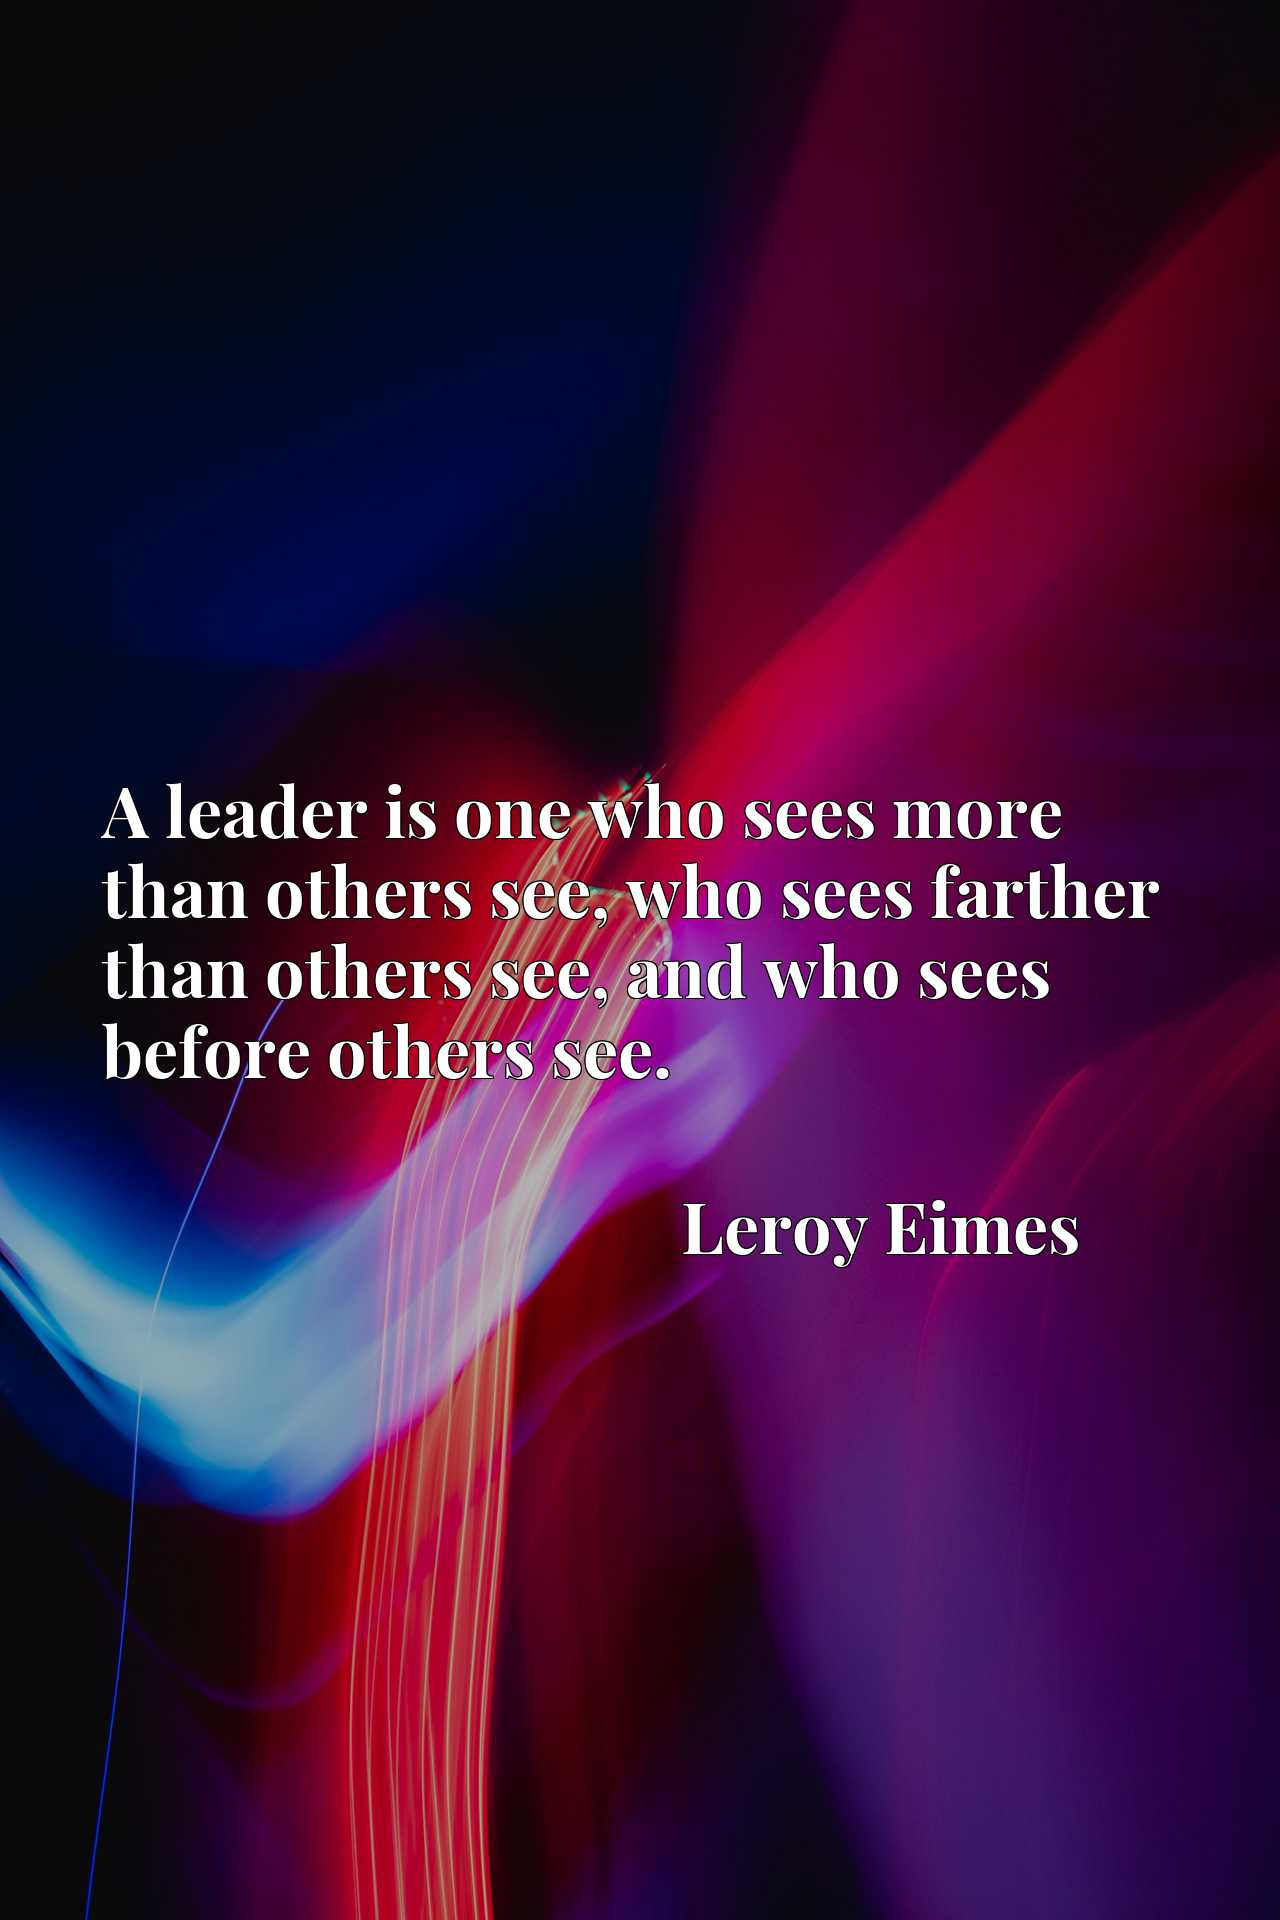 A leader is one who sees more than others see, who sees farther than others see, and who sees before others see.